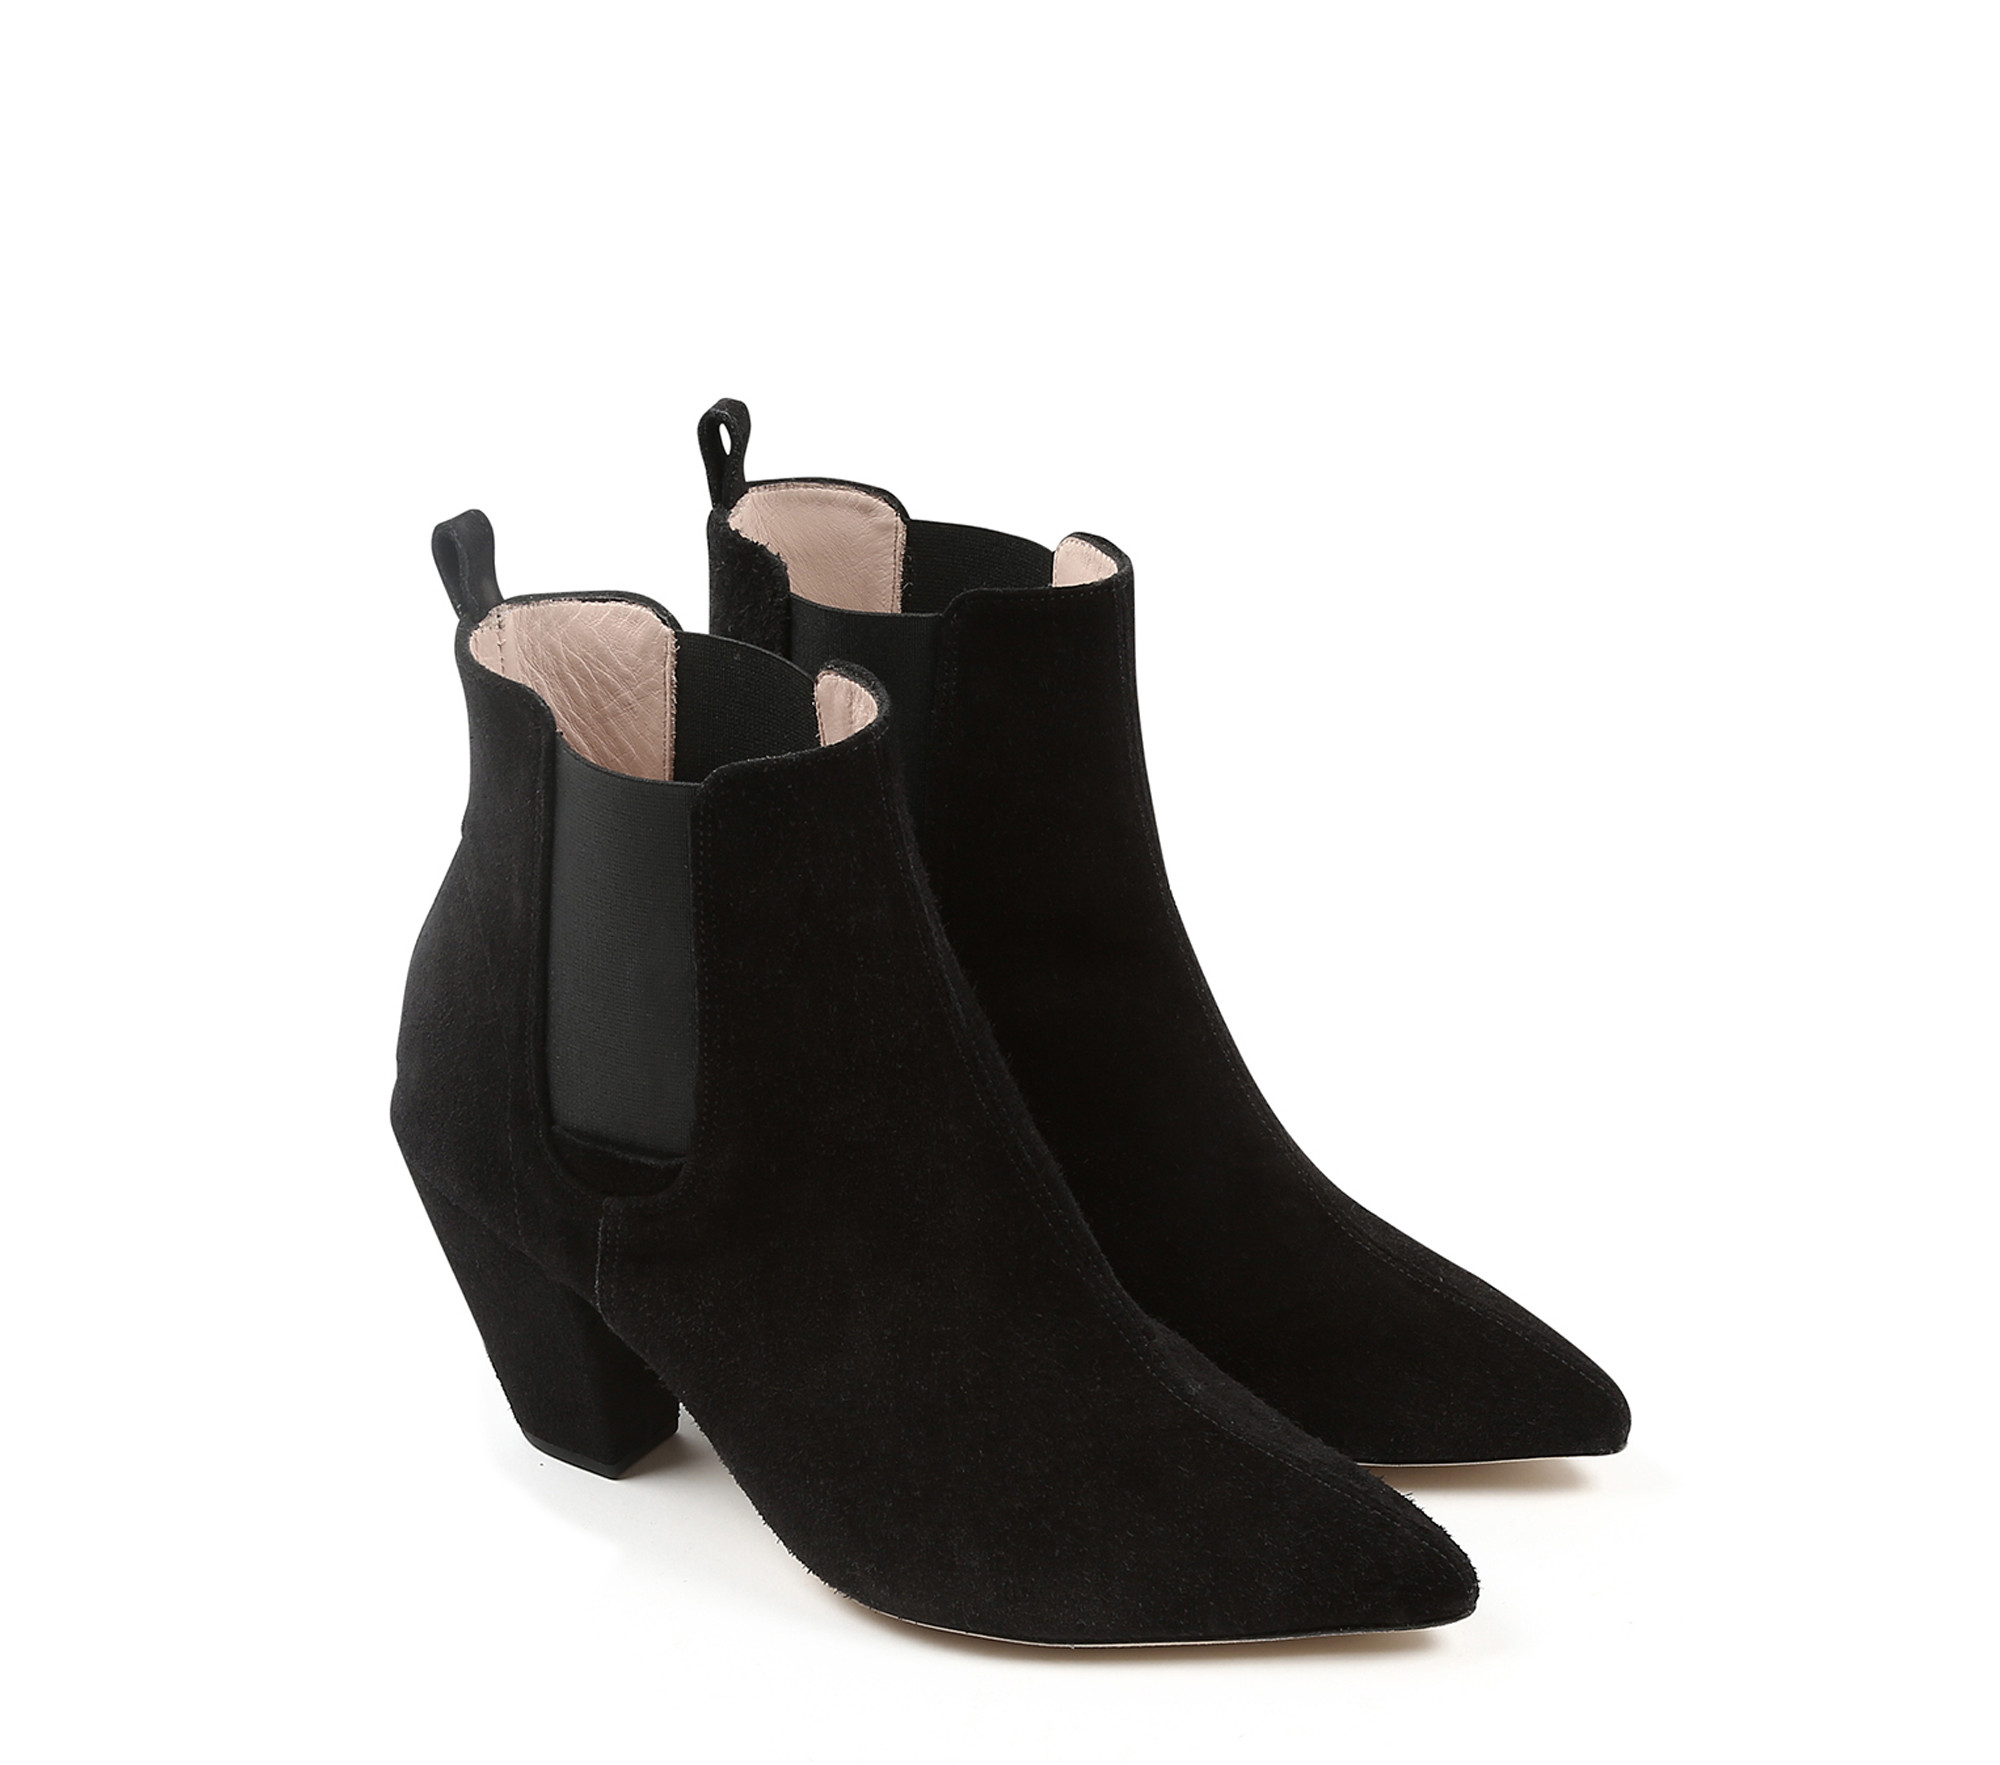 Janis boots